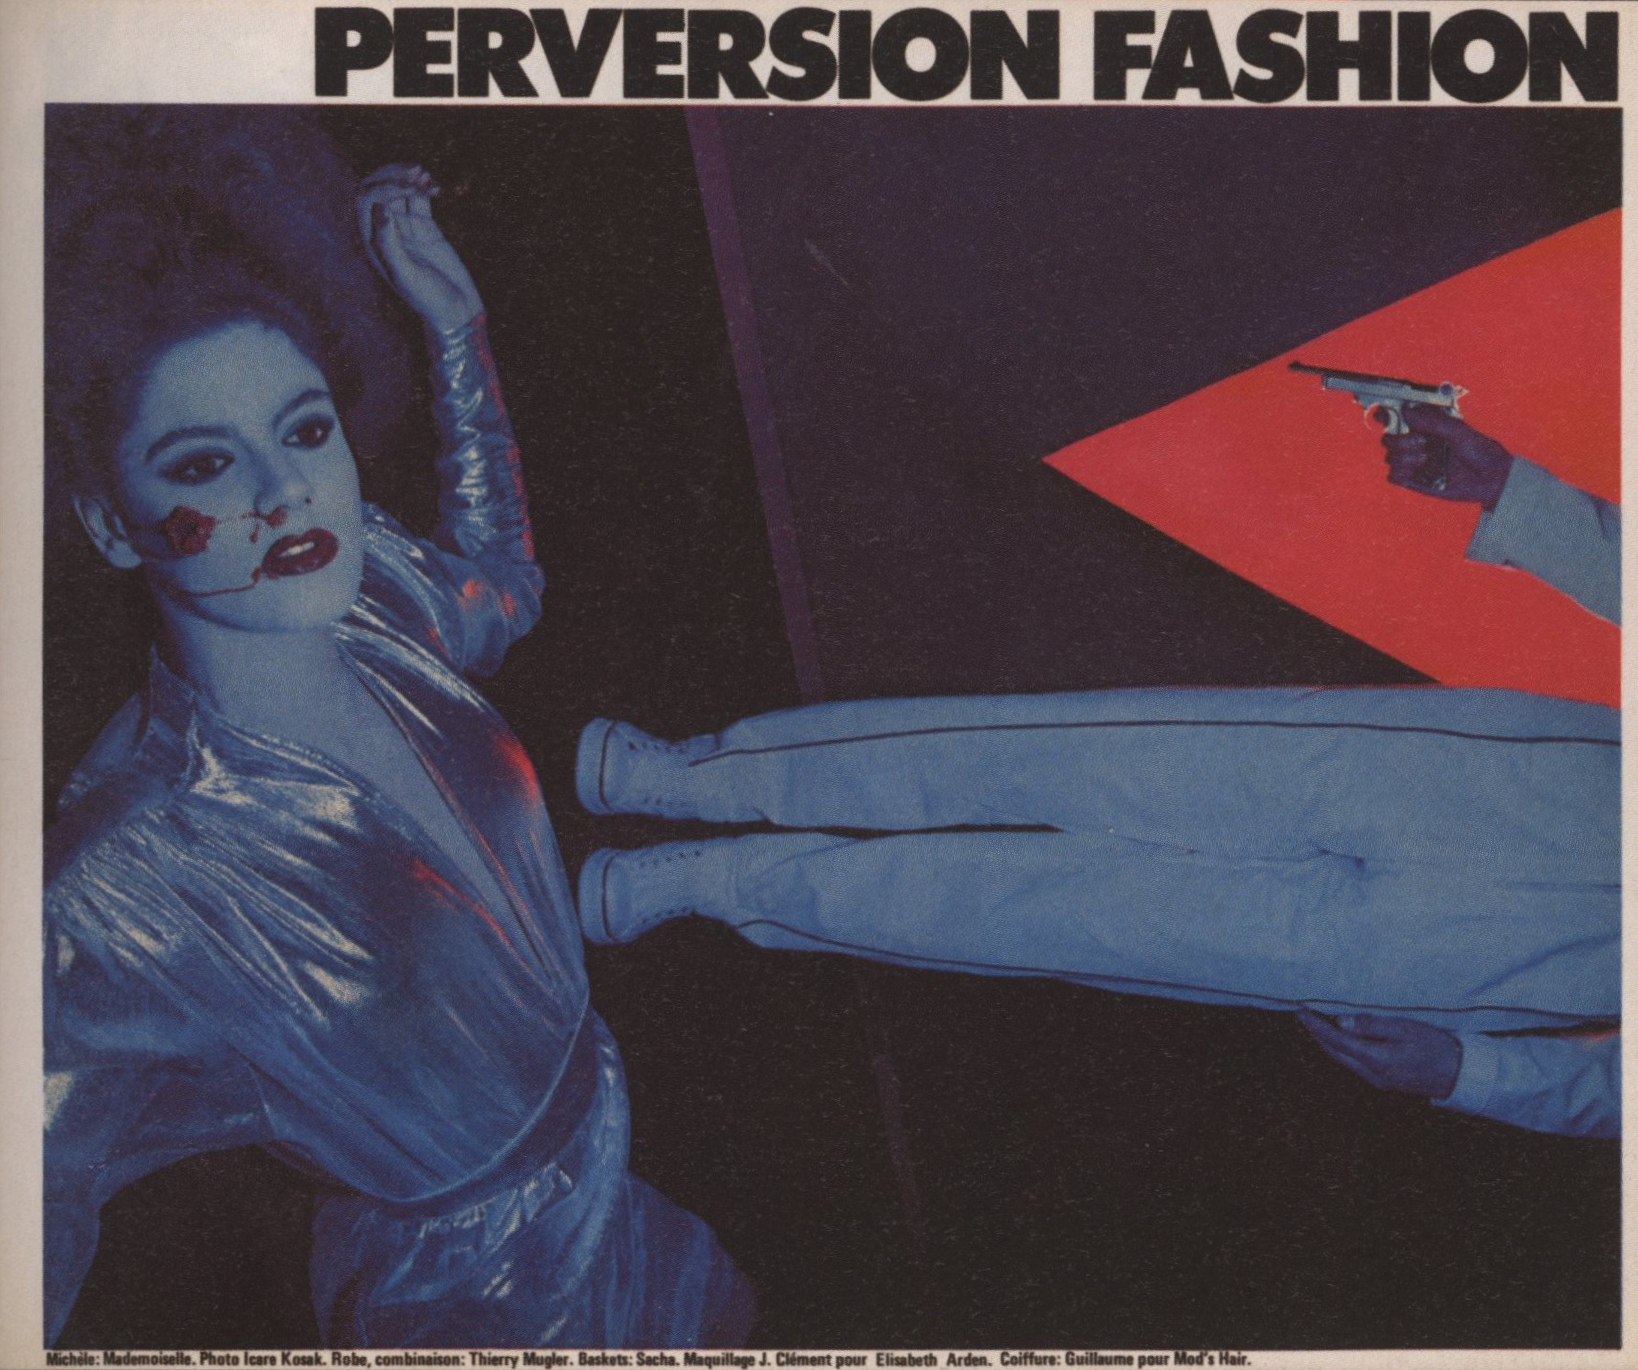 PERVERSION FASHION | PHOTOGRAPHY ICARE KOSAK | FACADE | 1979